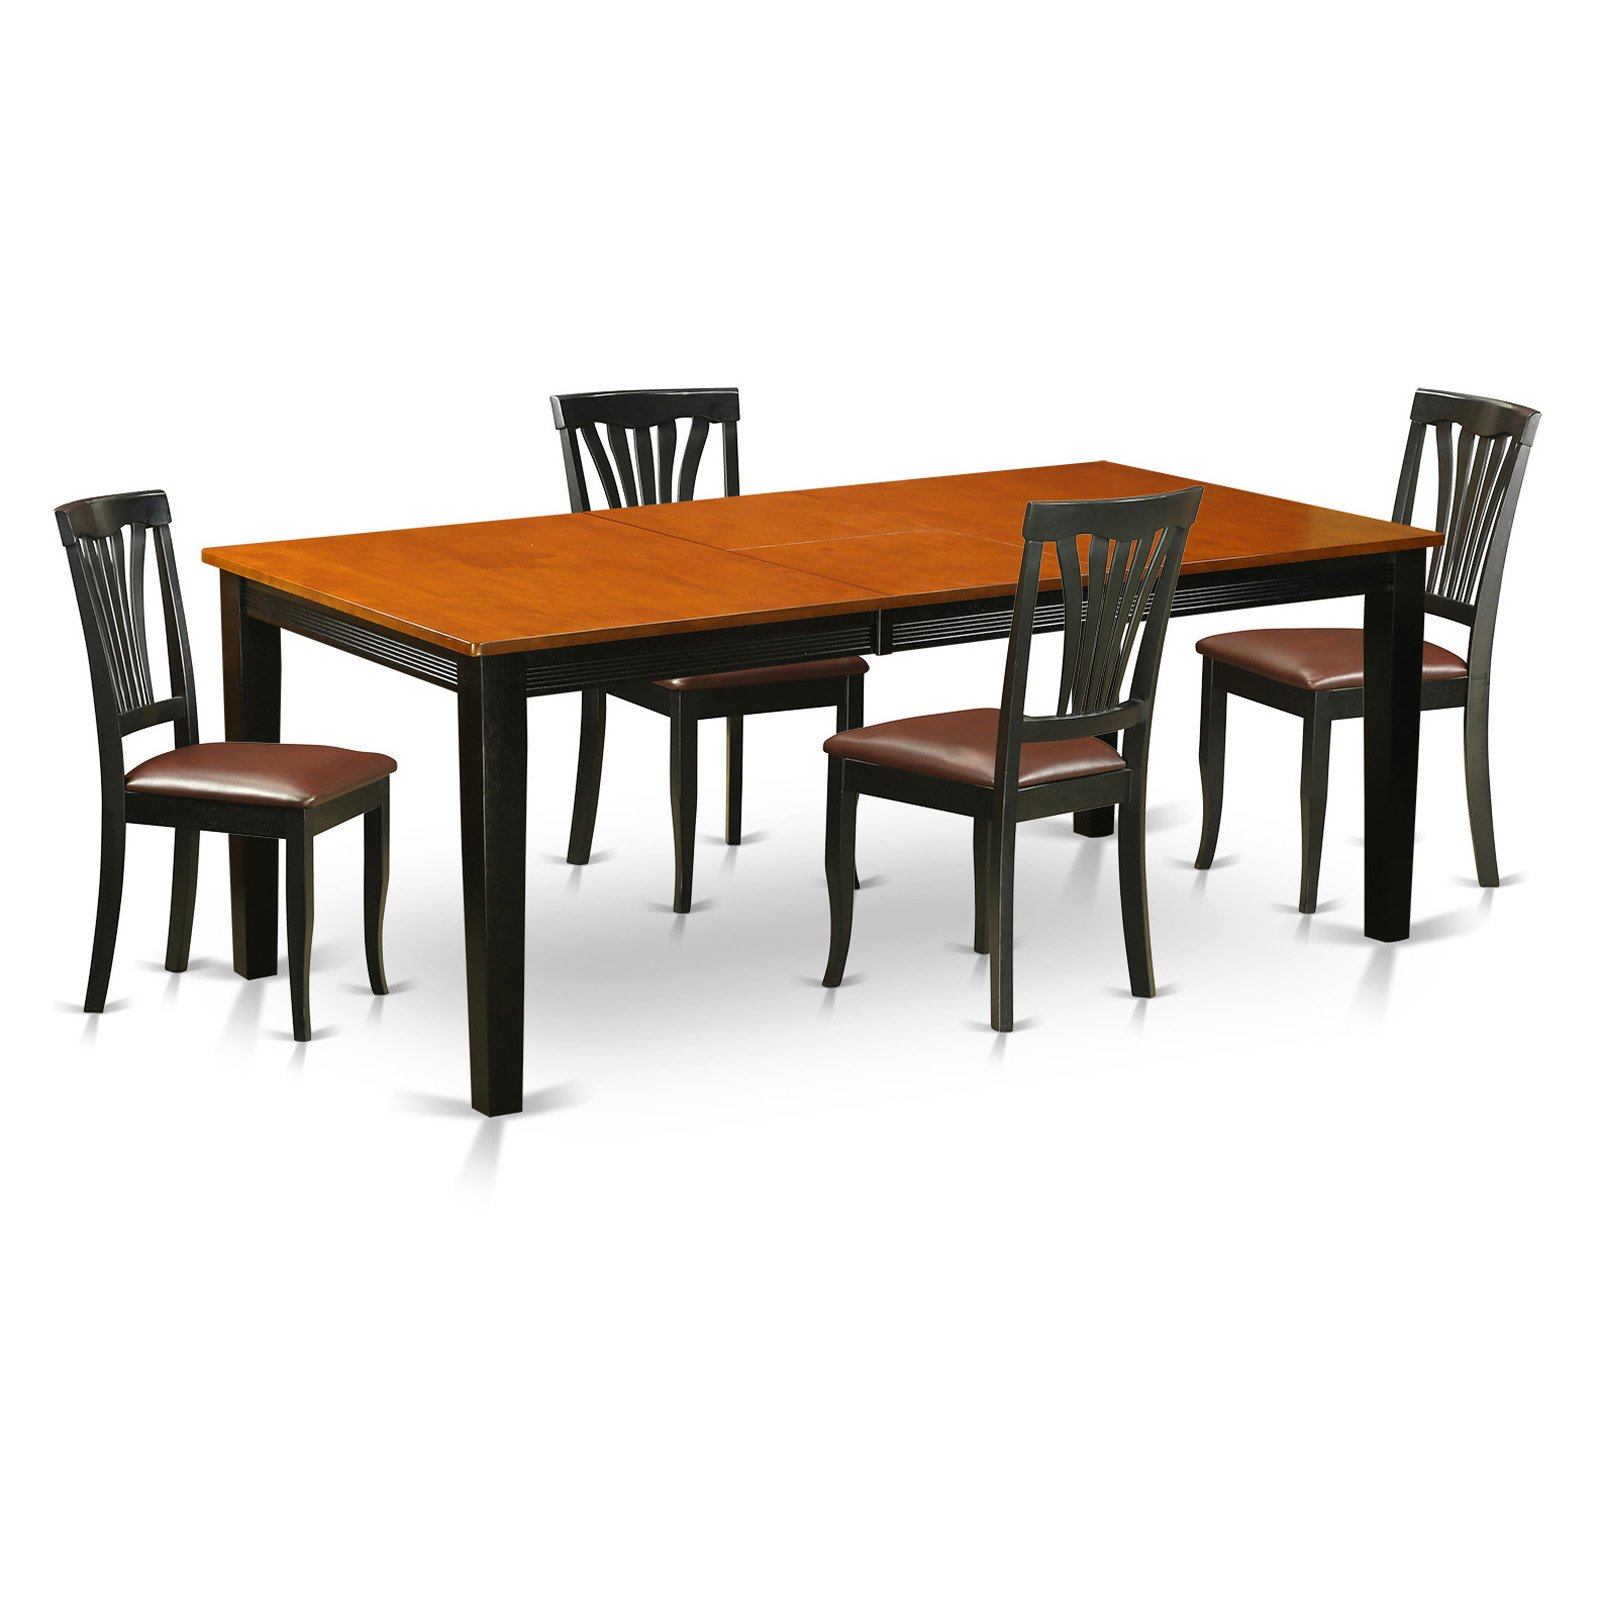 East West Furniture Quincy 5-Piece Lath Back Dining Table Set